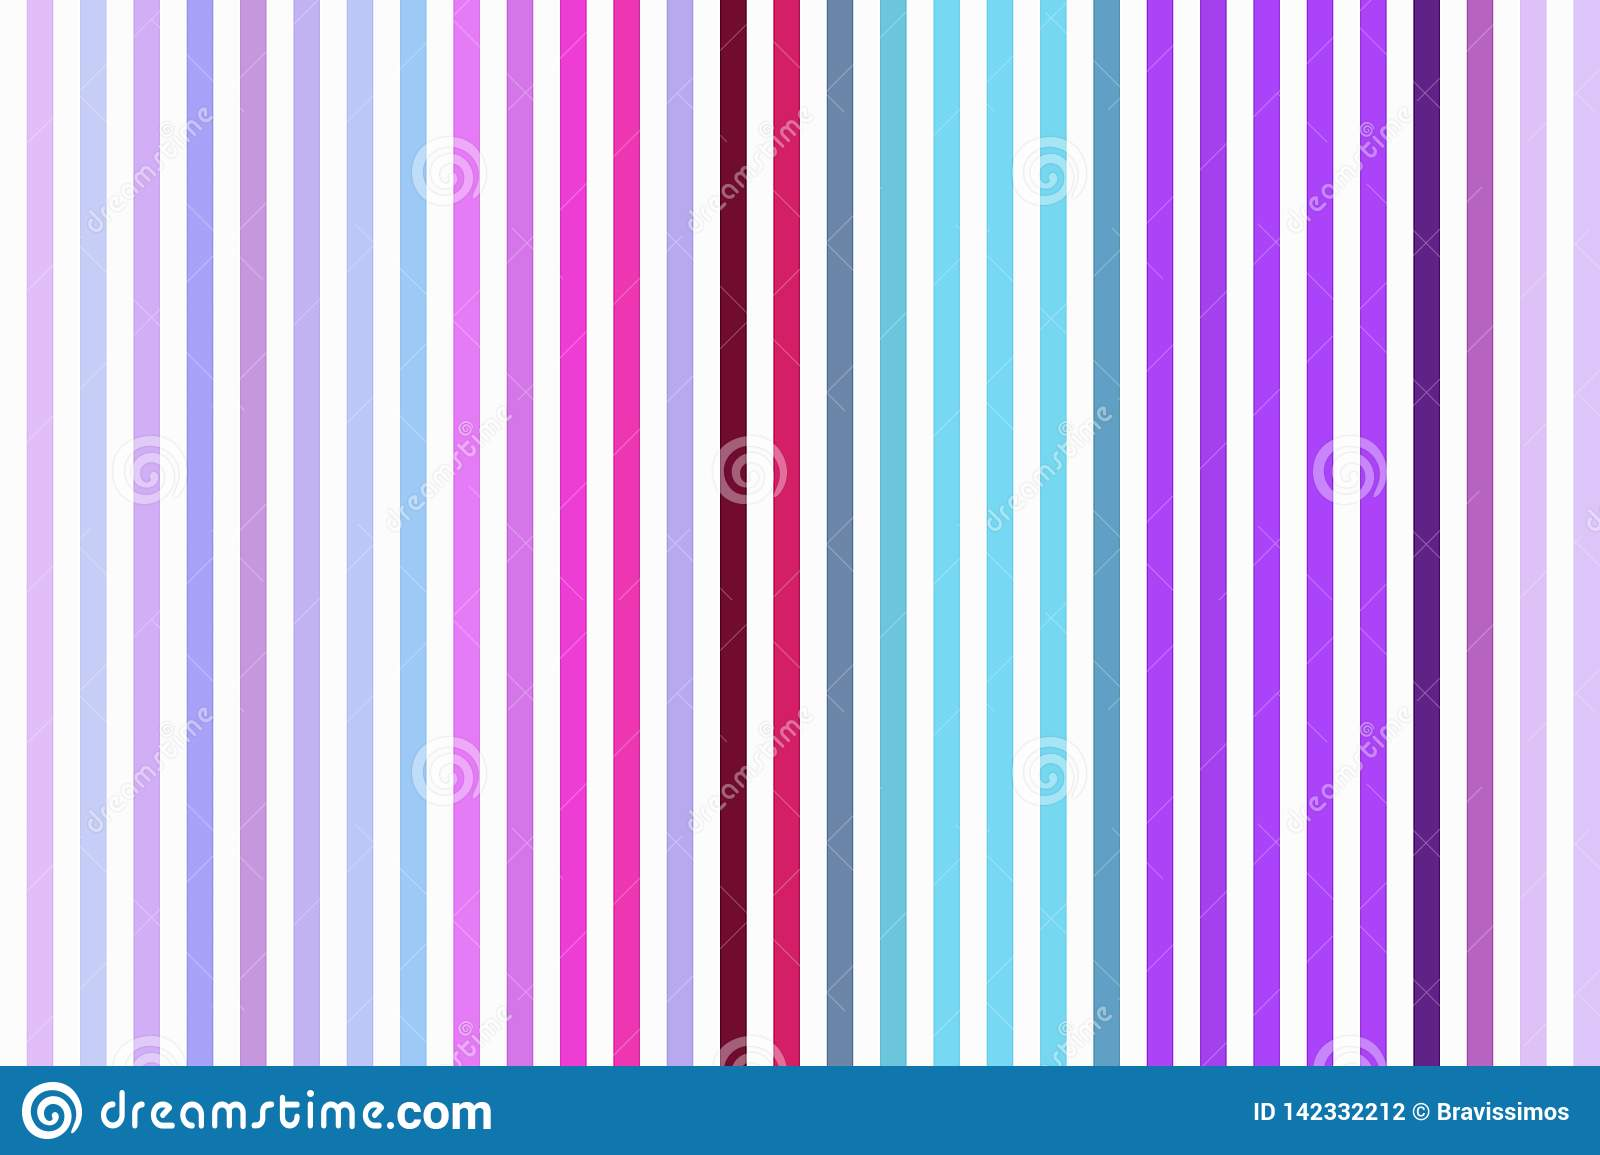 Light Vertical Line Background And Seamless Striped Texture White